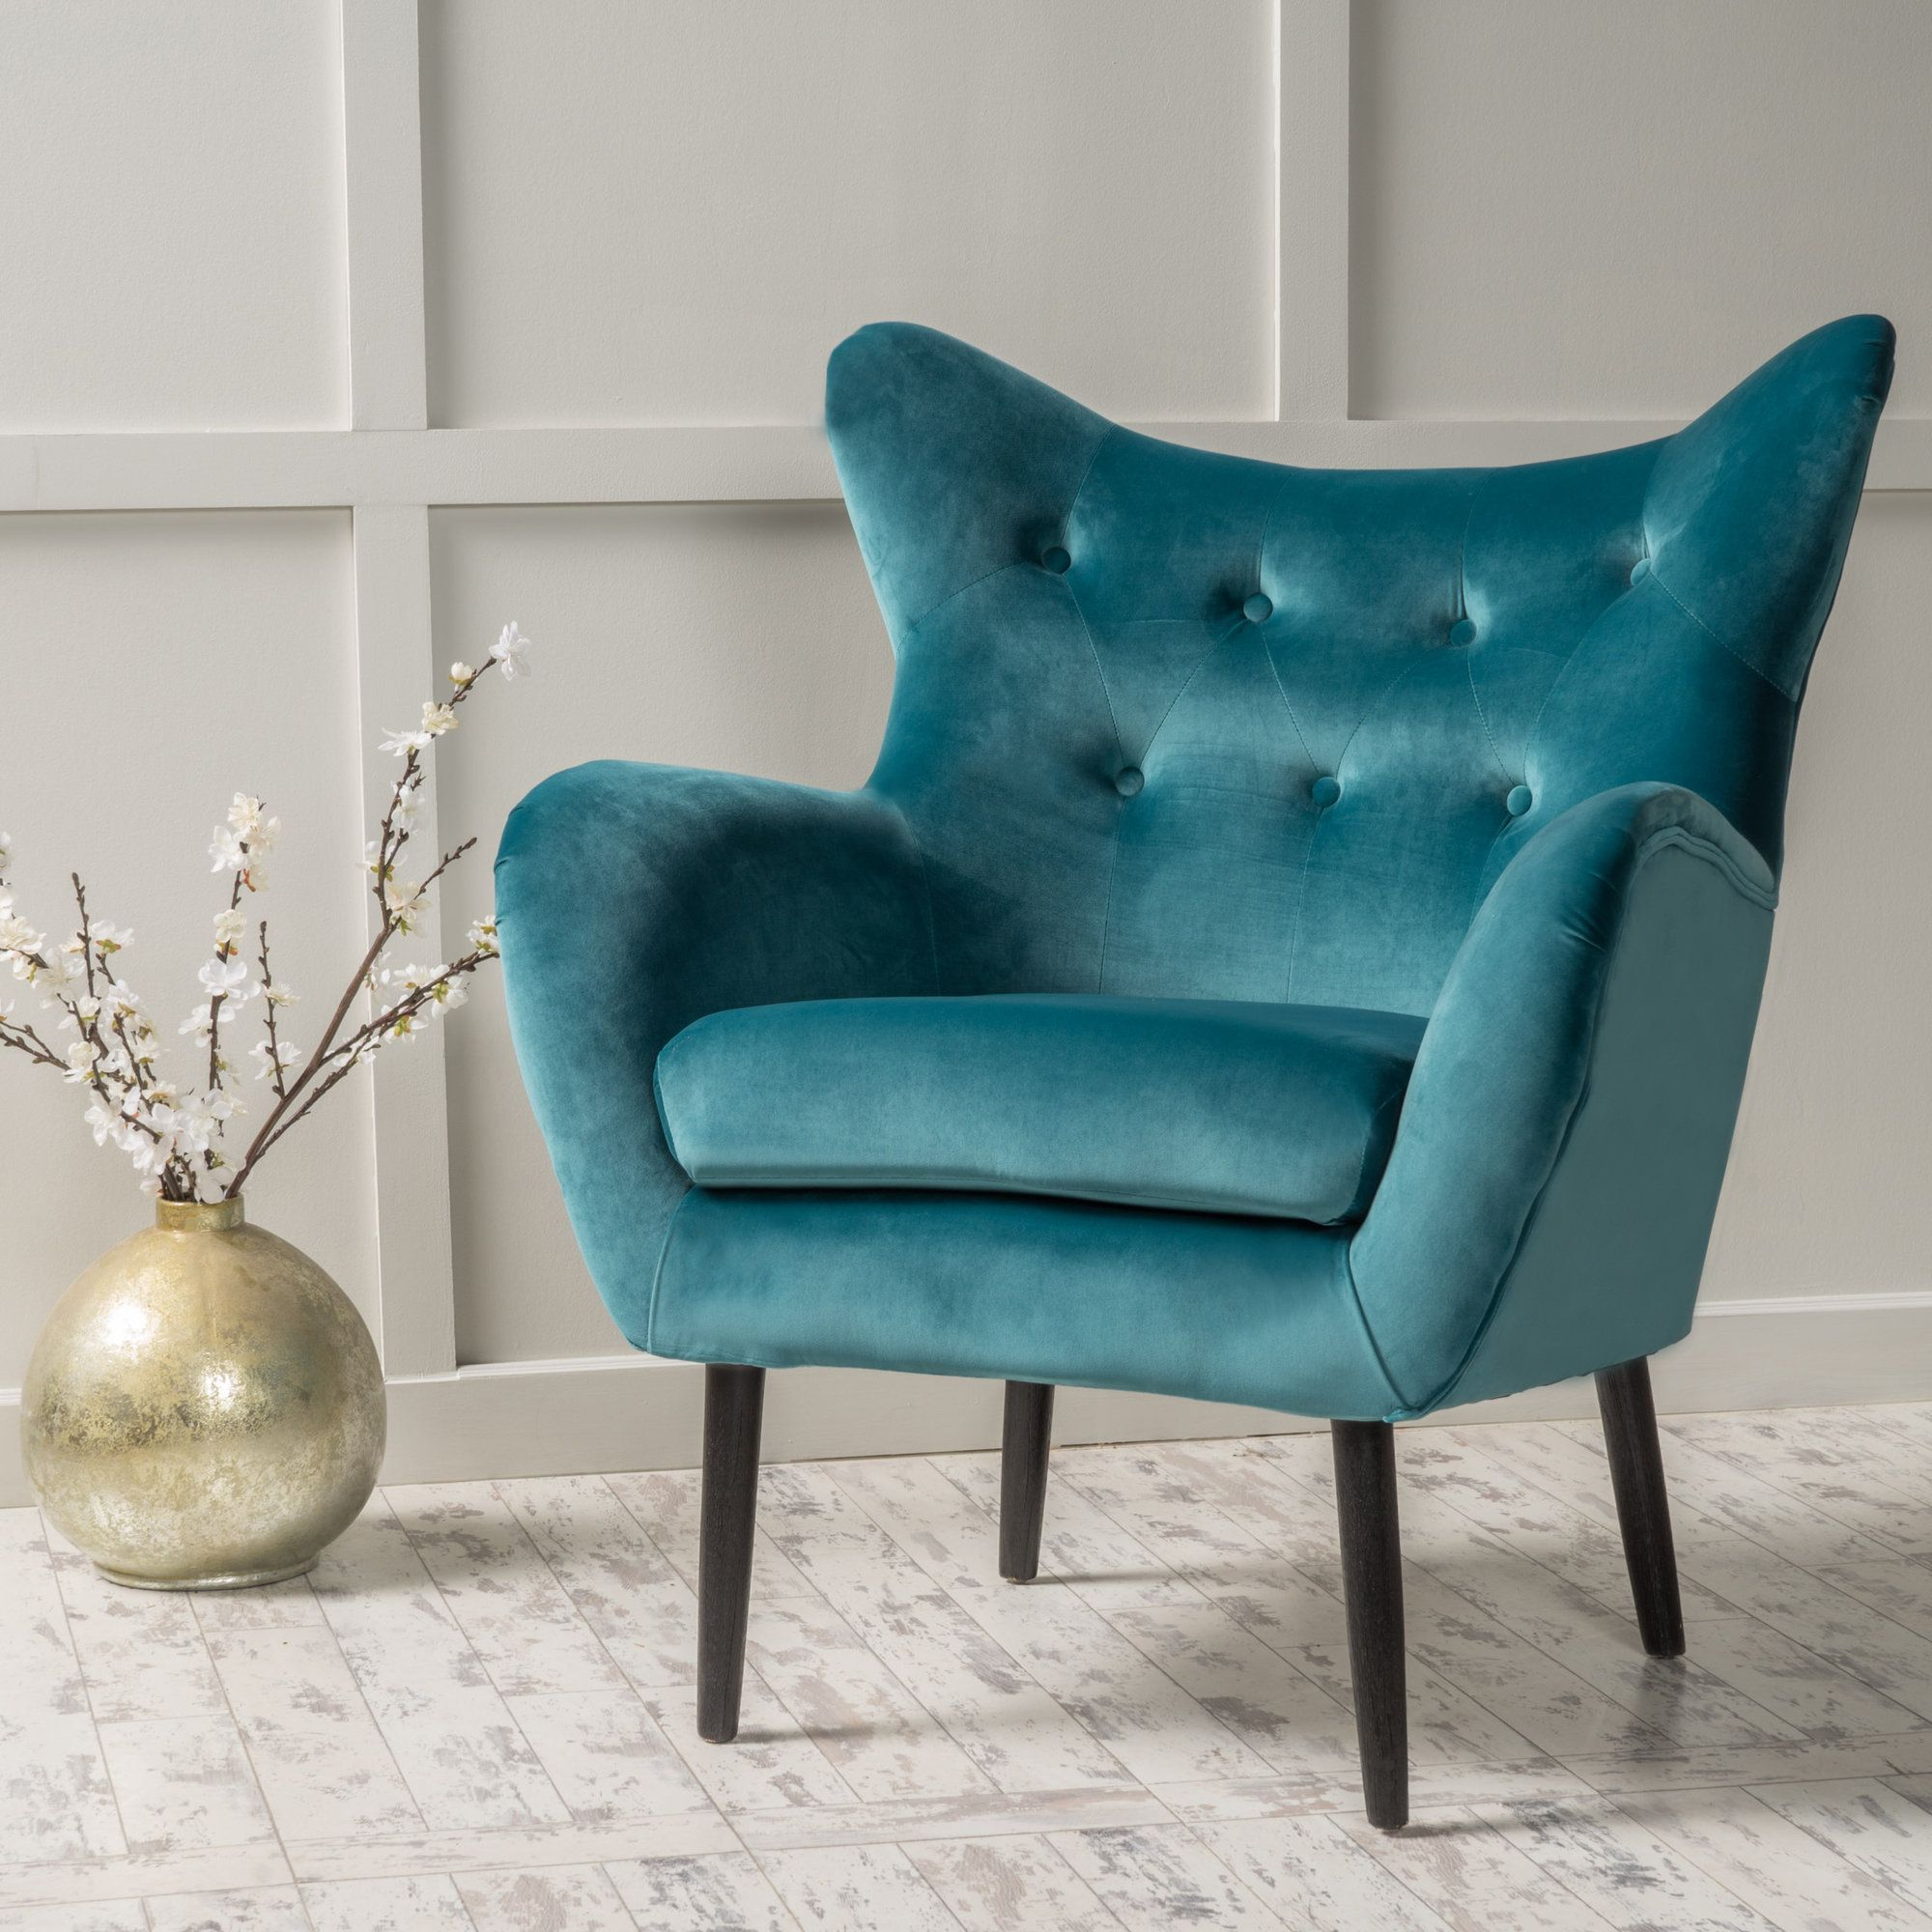 Bouck 21'' Wingback Chair | Living Room Chairs, Living Room Intended For Bouck Wingback Chairs (View 9 of 15)